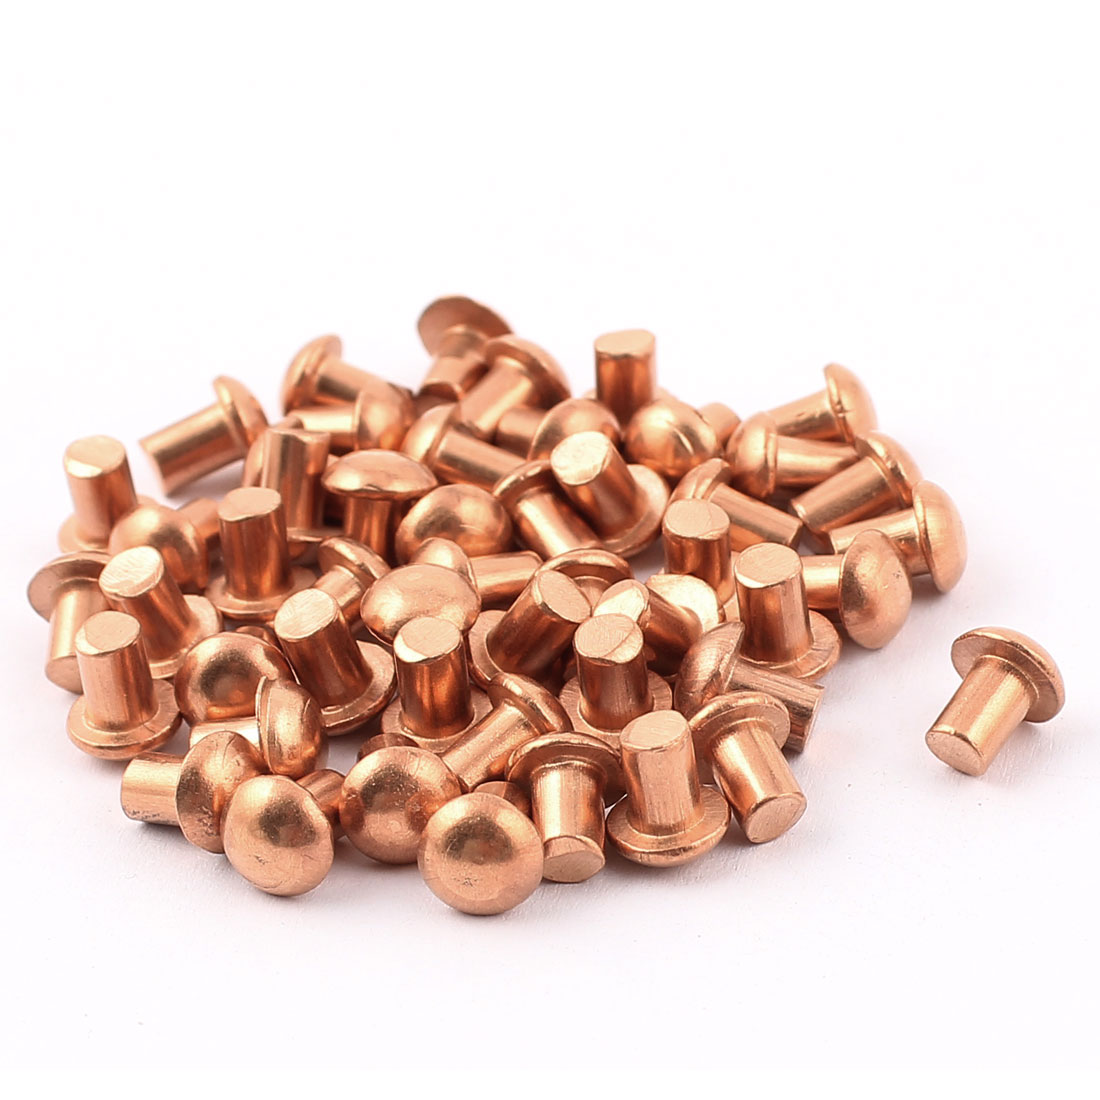 "50 Pcs 5/32"" x 13/64"" Round Head Copper Solid Rivets Fasteners"